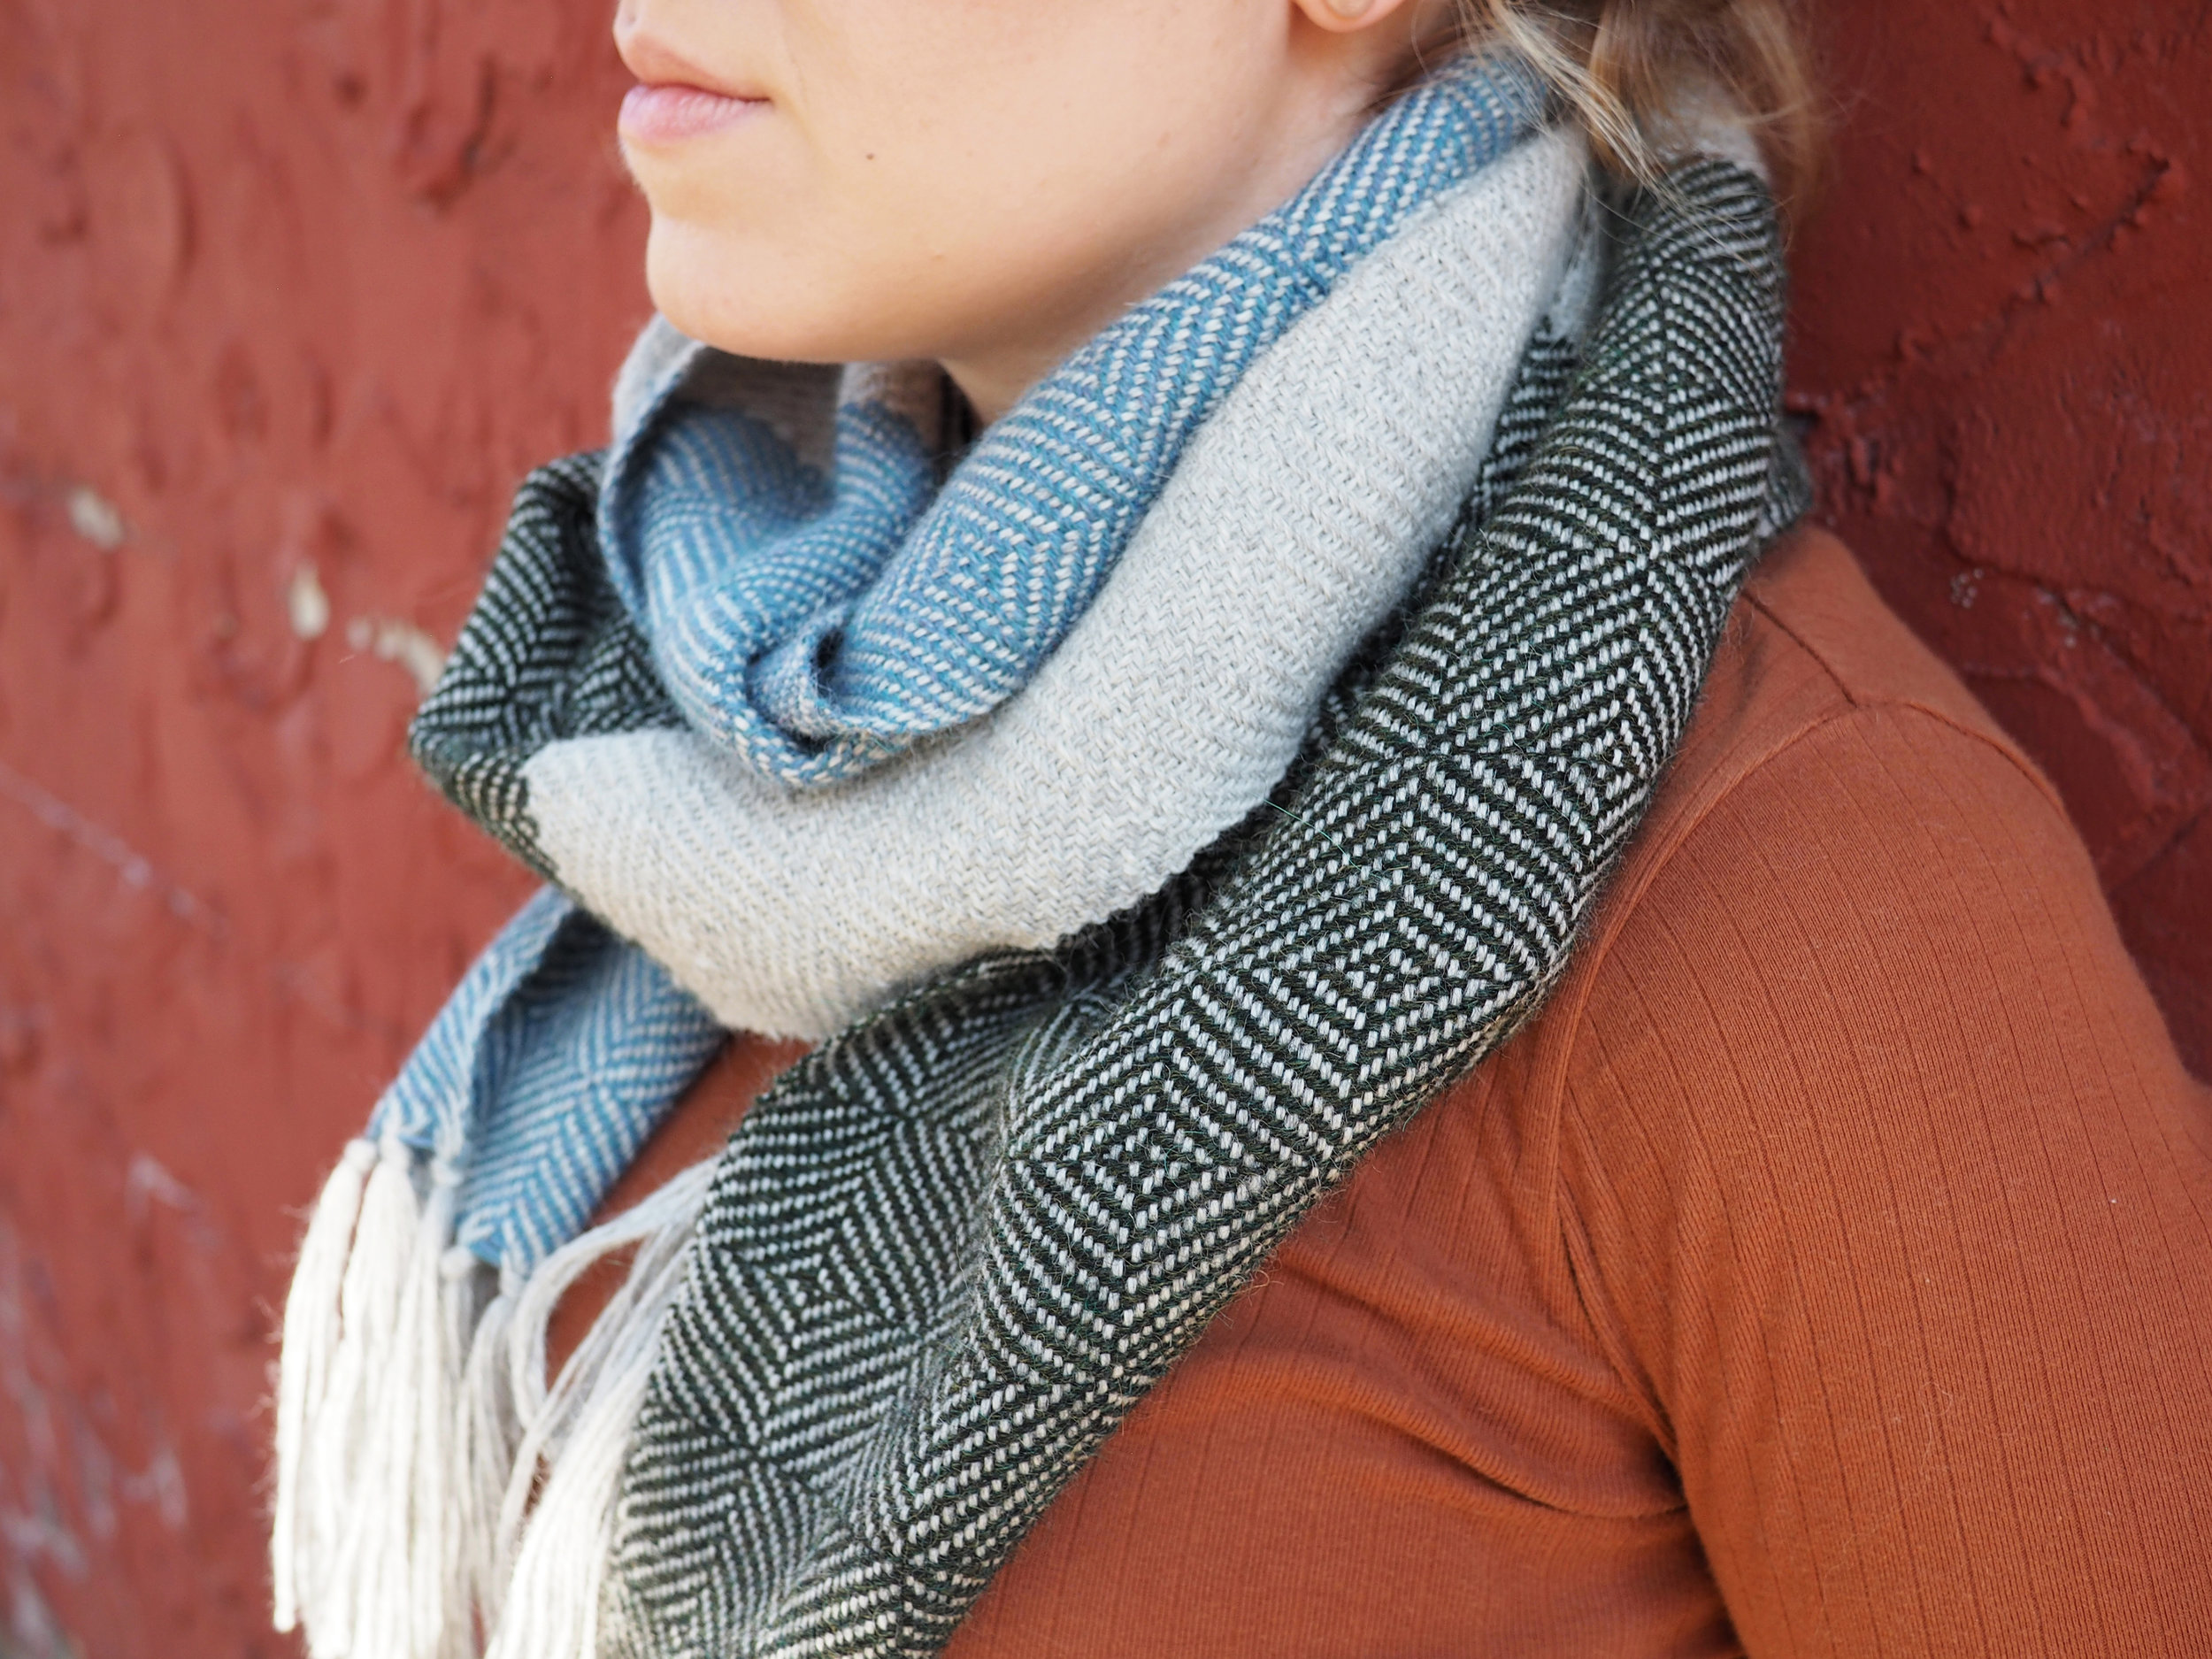 View and download the free weaving pattern I created for Gist Yarn & Fiber!